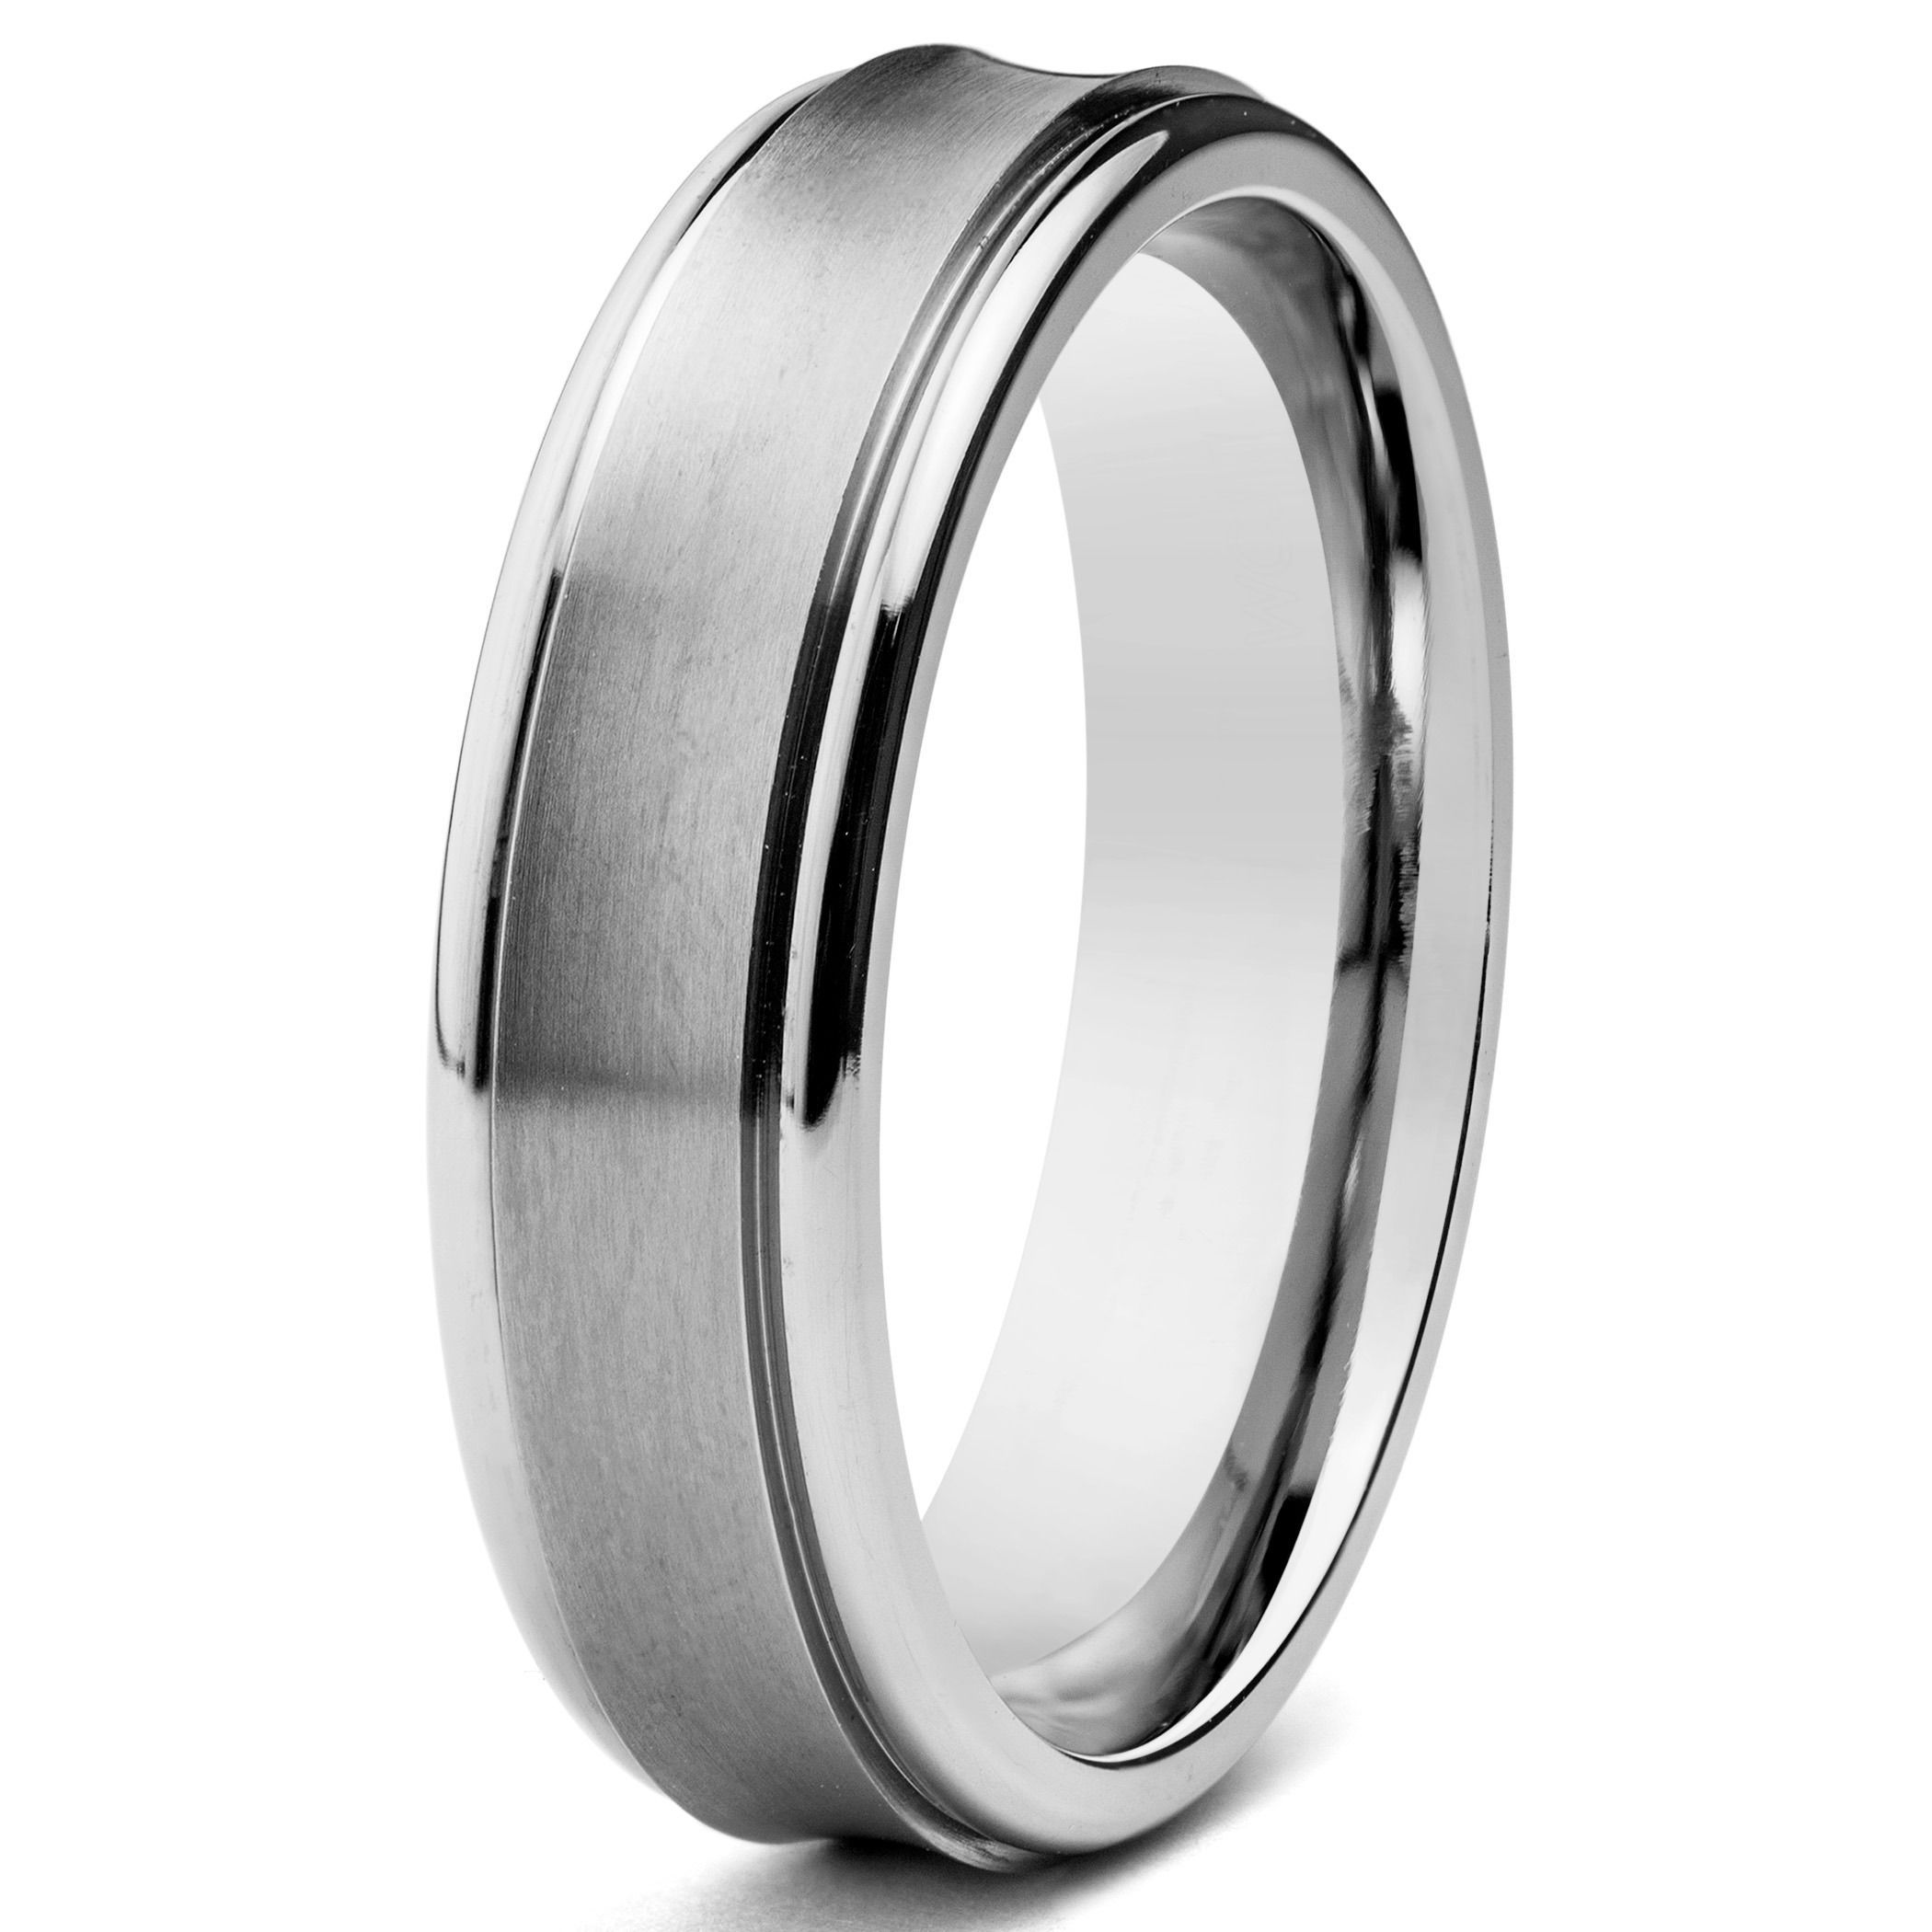 Fashioned In Durable Titanium This Men's Ring Features A Smooth Brushed Finish Center With Highly Polished Grooved Edges Has Fort Fit Design: Concave Brushed Wedding Band At Websimilar.org